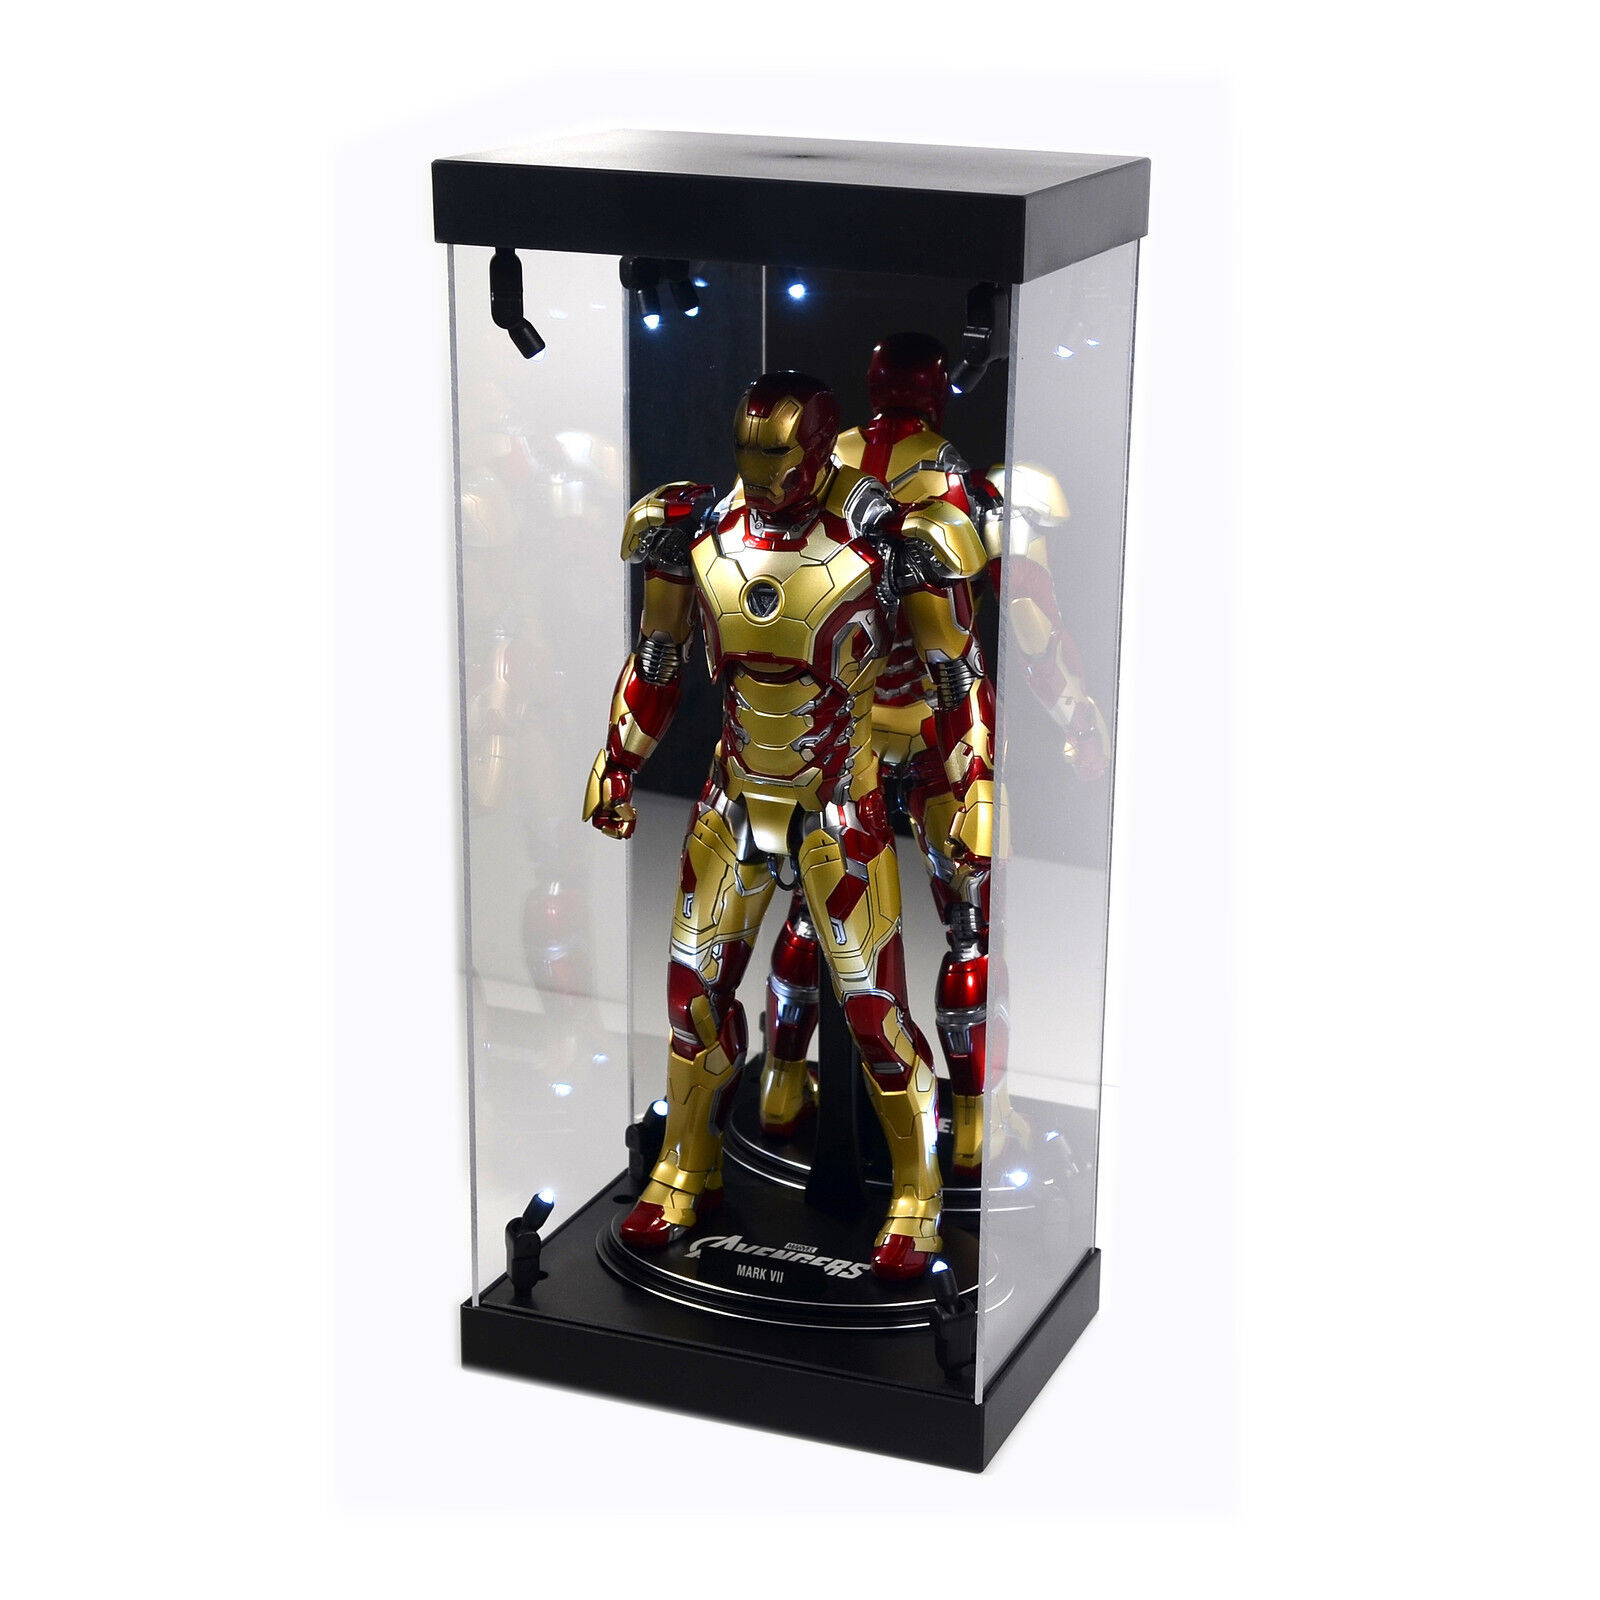 Acrylic Display  Case lumière Box for 12  1 6th Scale IRON homme Mark 17 Heartbreaker  moins cher